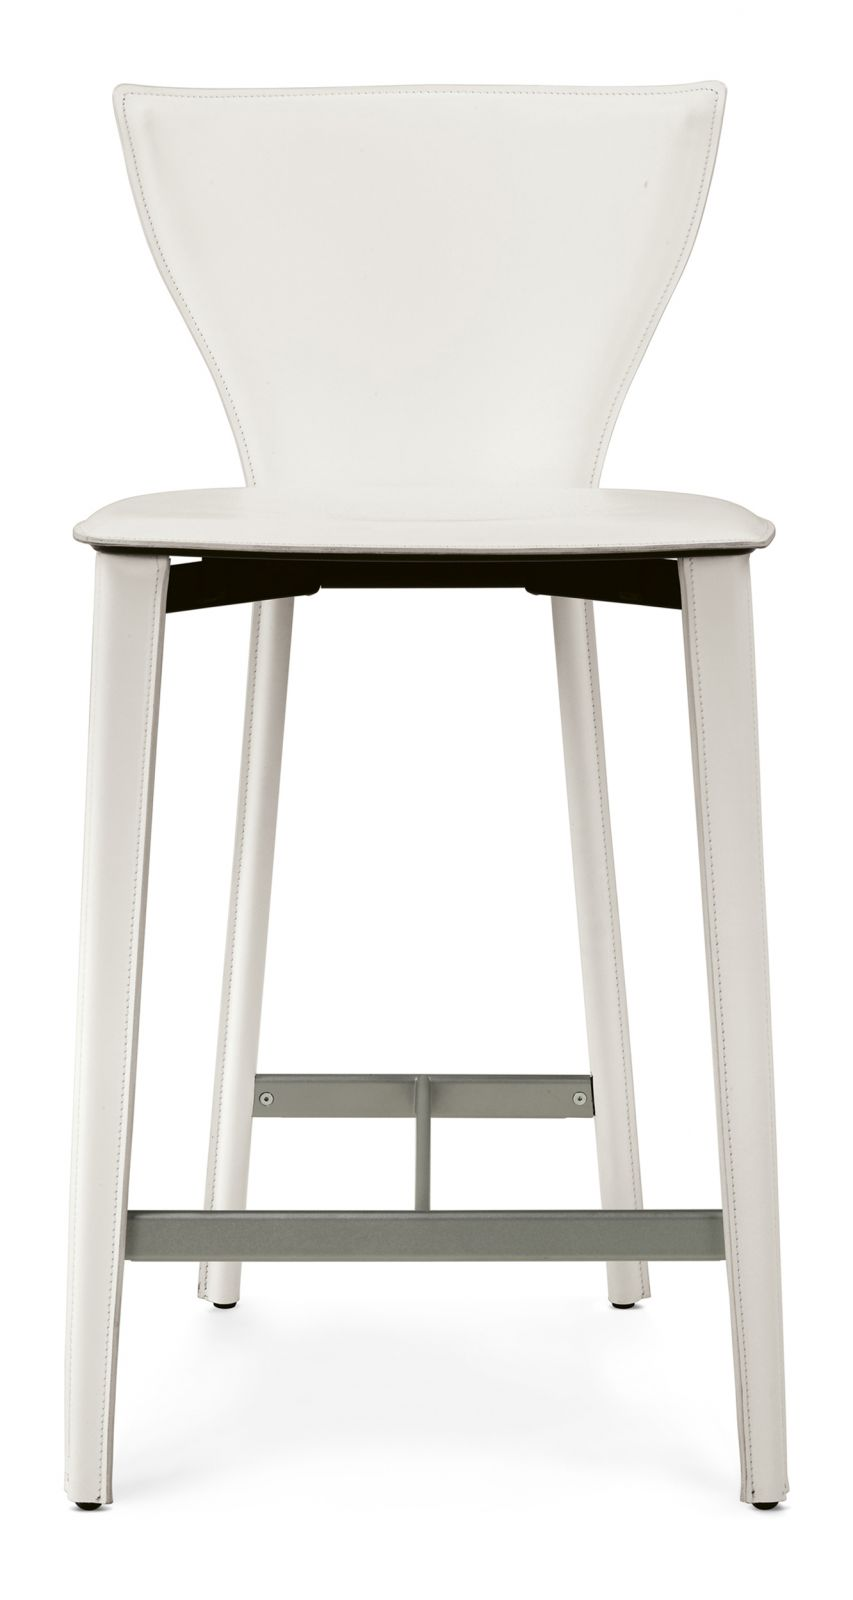 modern-bar-stools-Italian-furniture-large (31).jpg